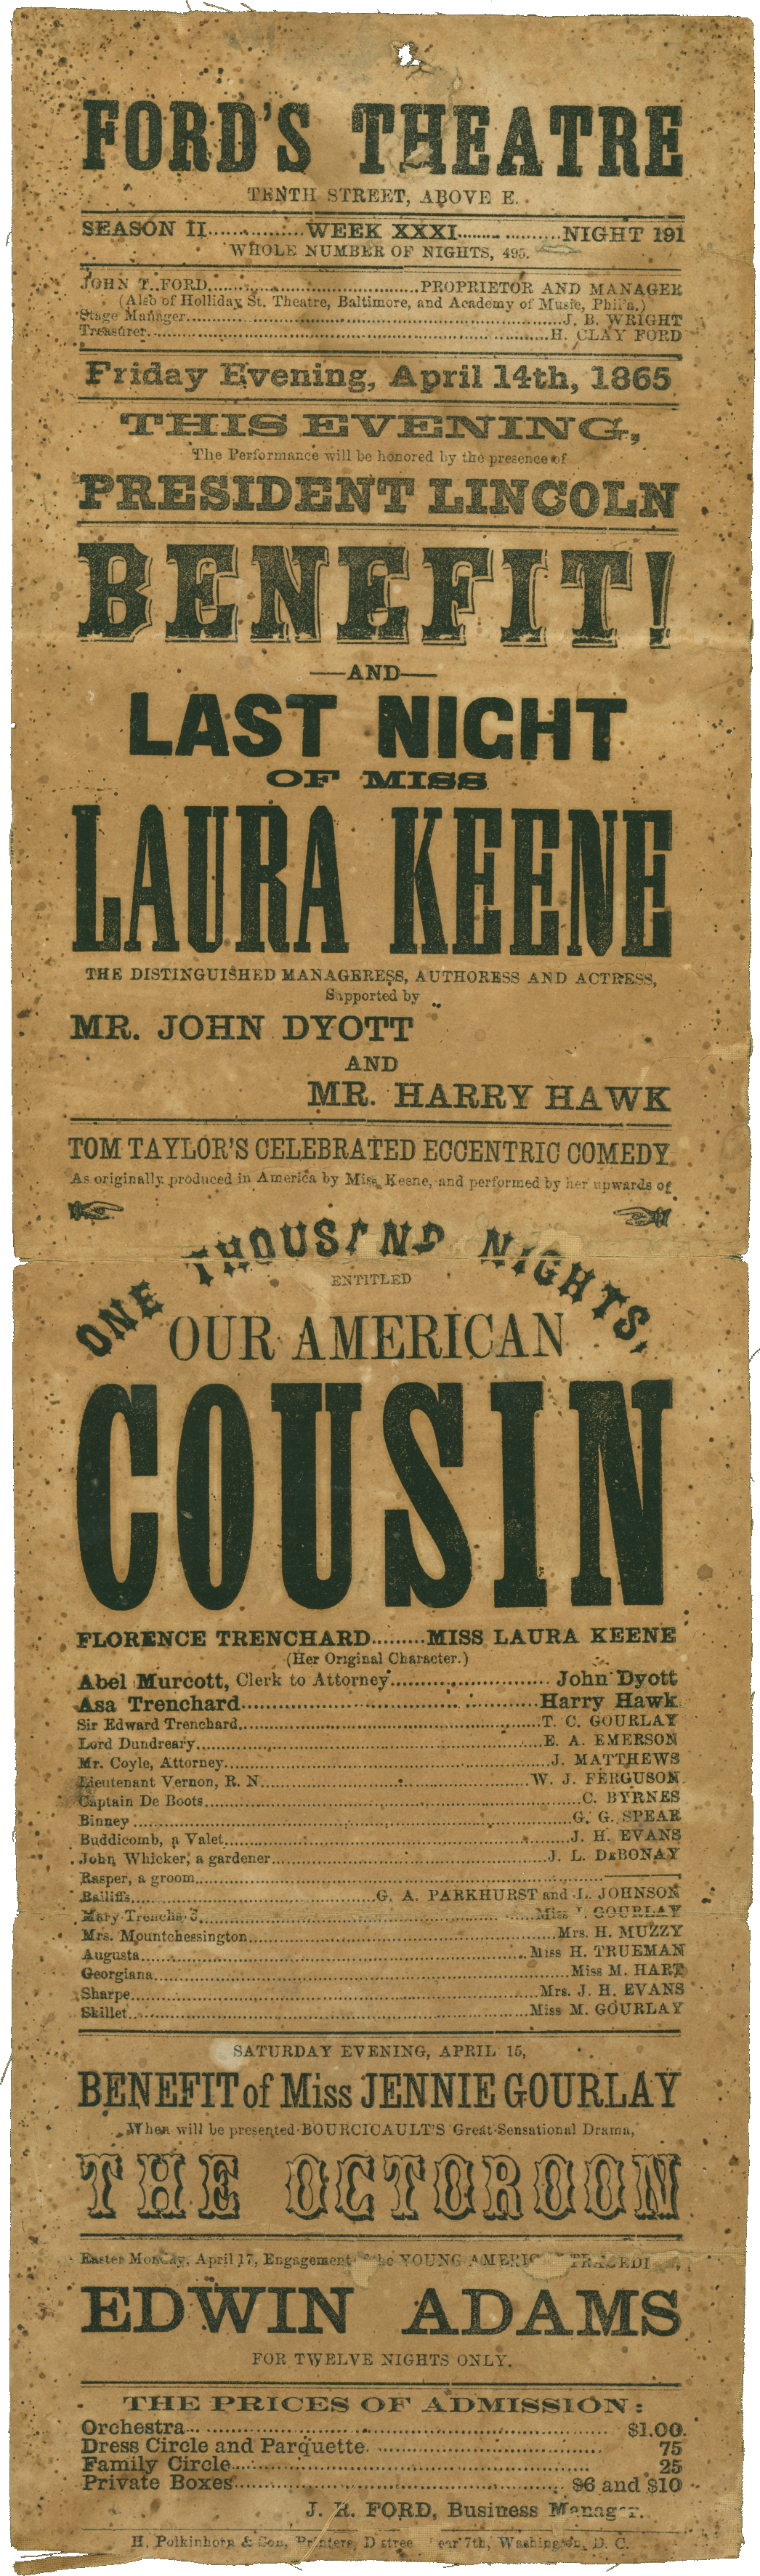 http://upload.wikimedia.org/wikipedia/commons/8/87/Fords_Theatre_Playbill_1865-04-14.png